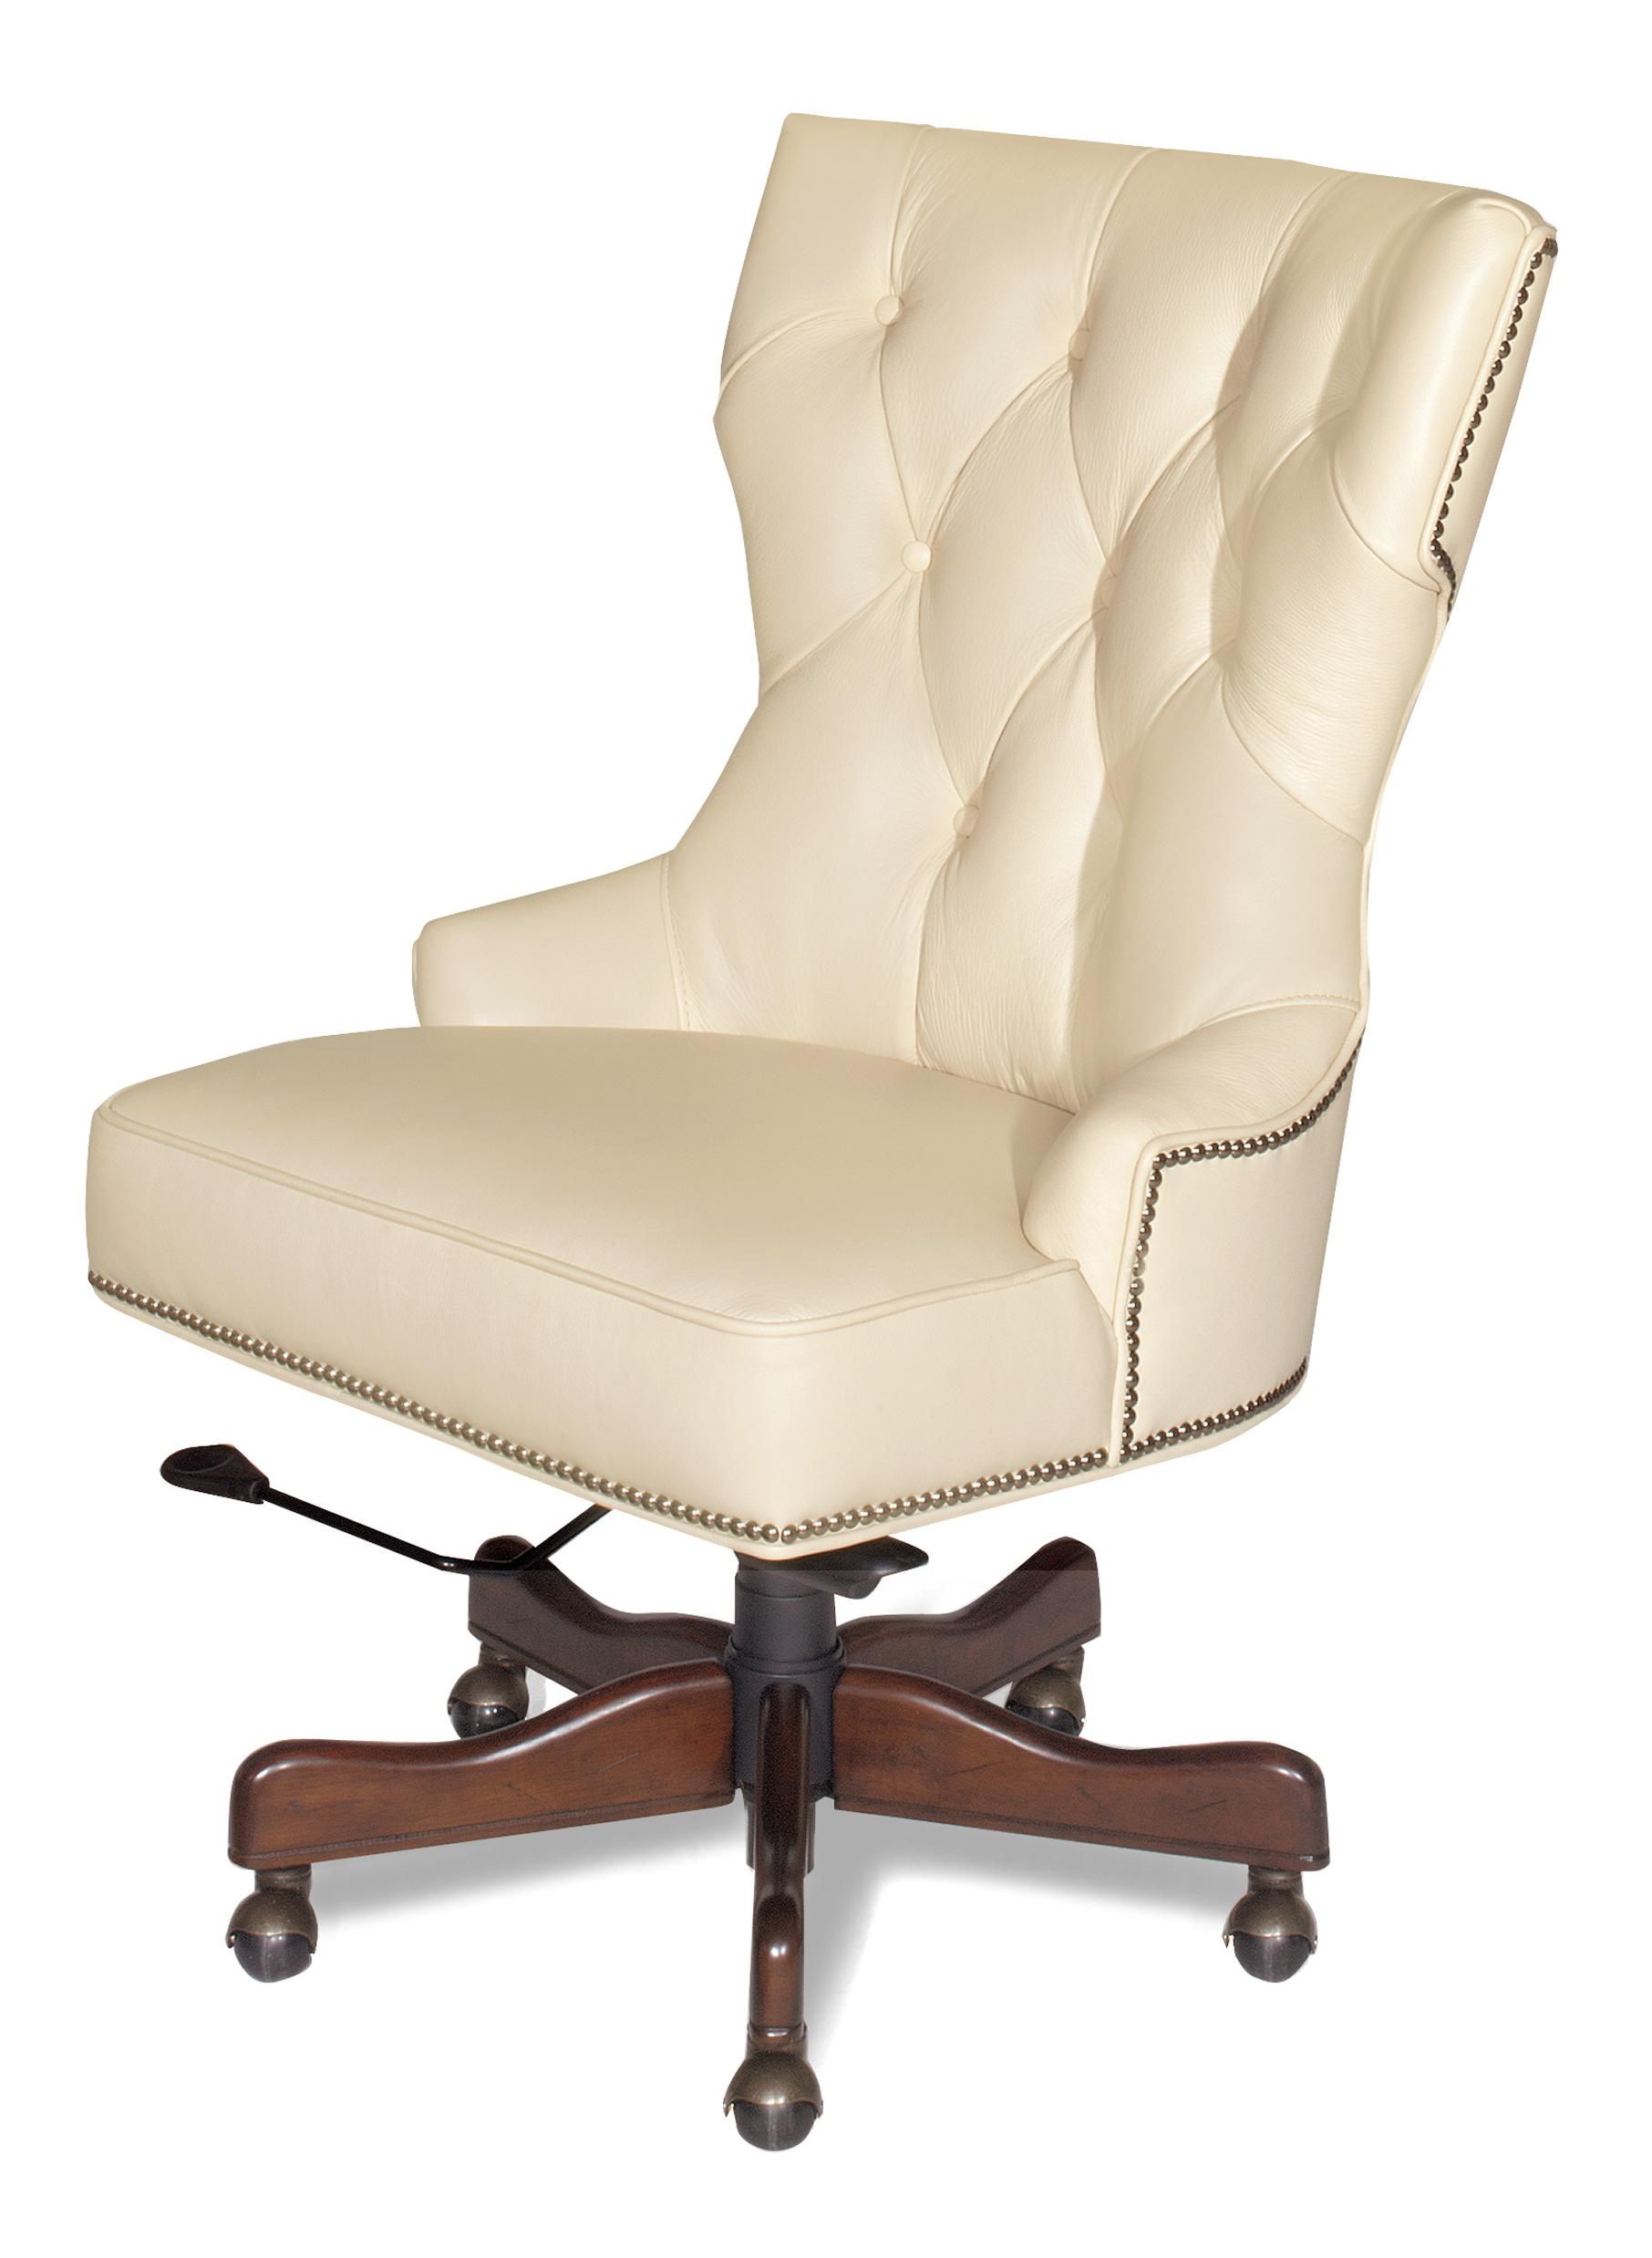 Hooker Leather Chair Hooker Furniture Executive Seating Executive Swivel Tilt